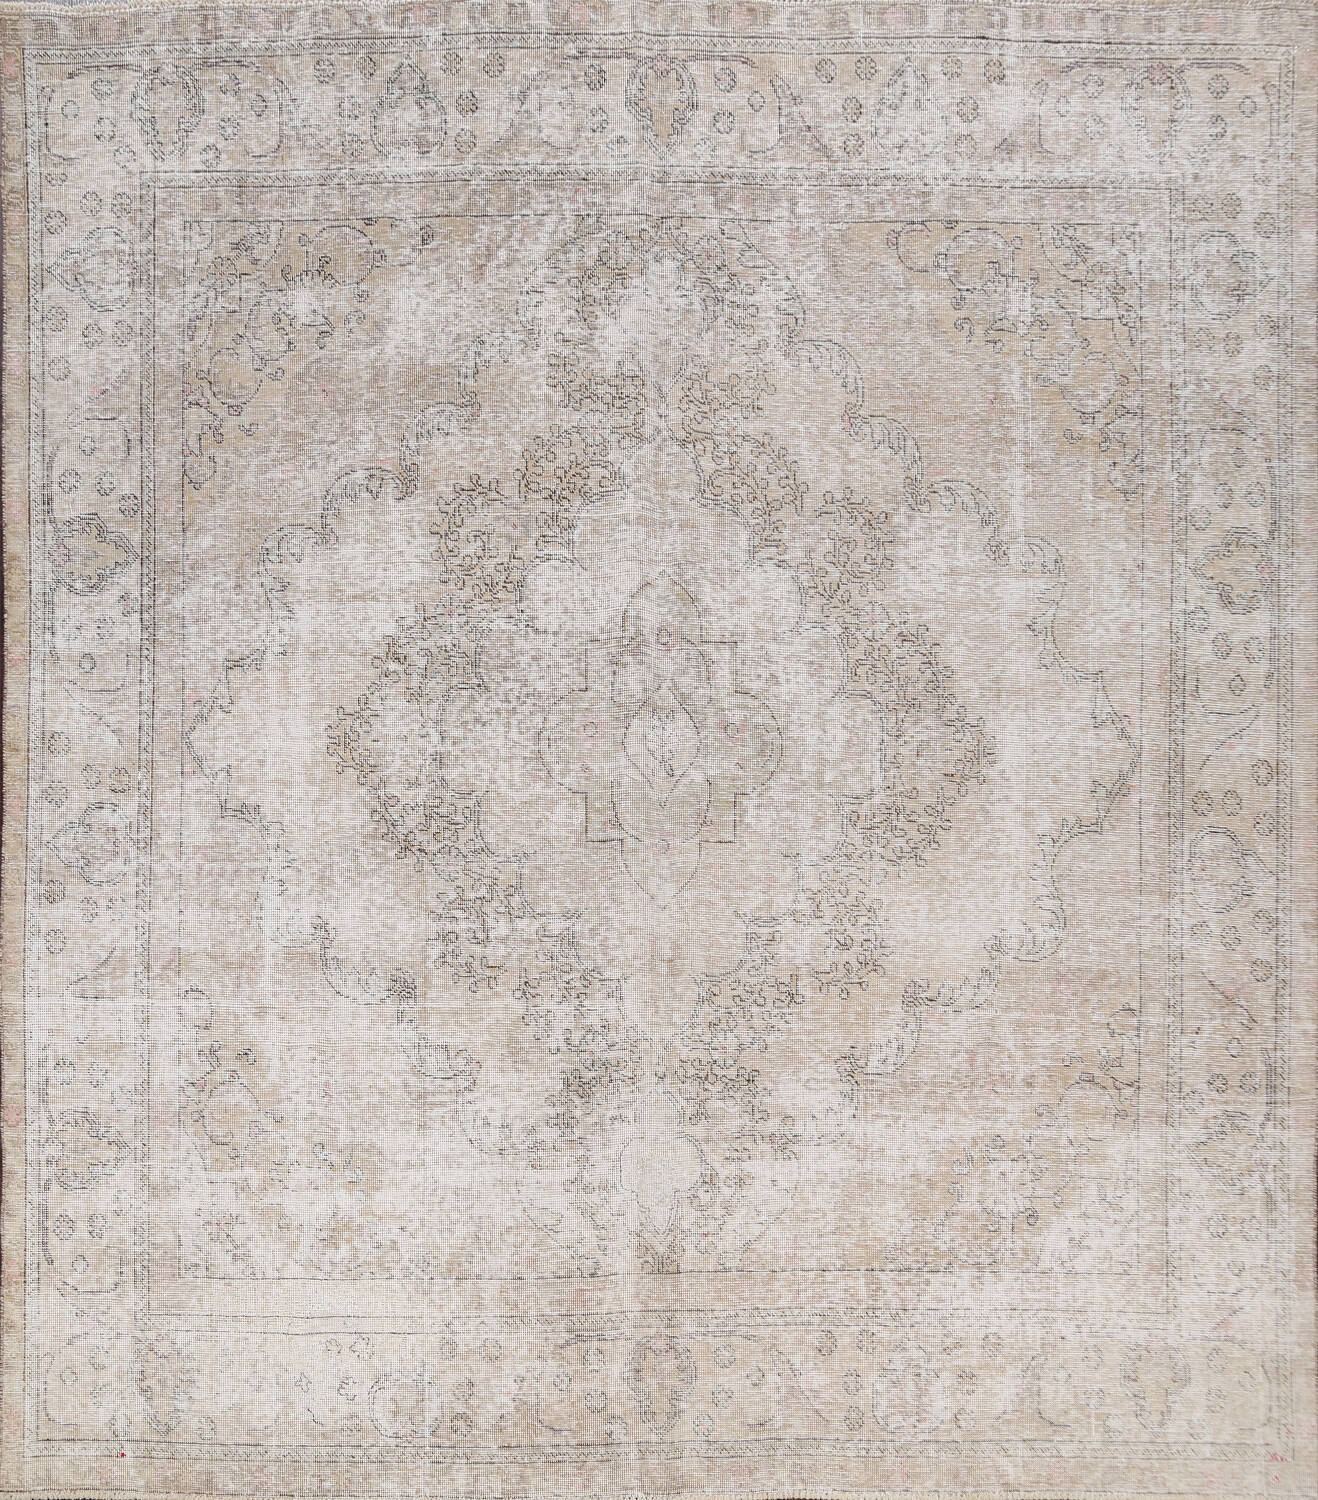 Muted Distressed Tabriz Persian Area Rug 9x9 Square image 1